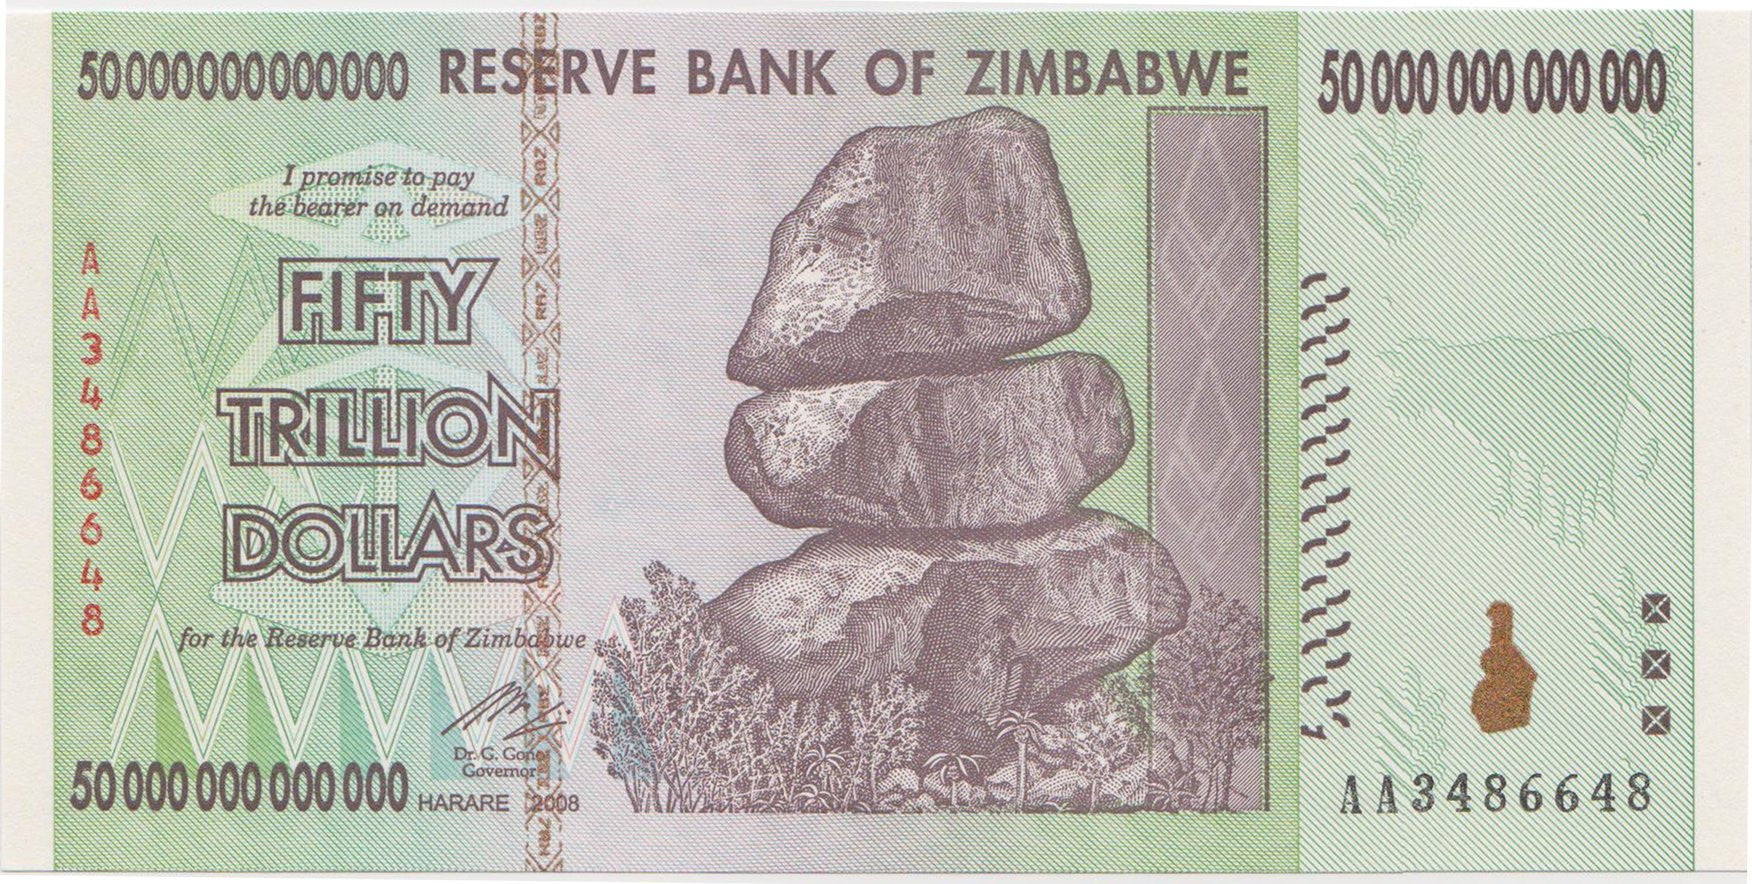 Zimbabwe; 100 TRILLION Dollars 2008 UNC World/'s Largest Currency Bill EVER made